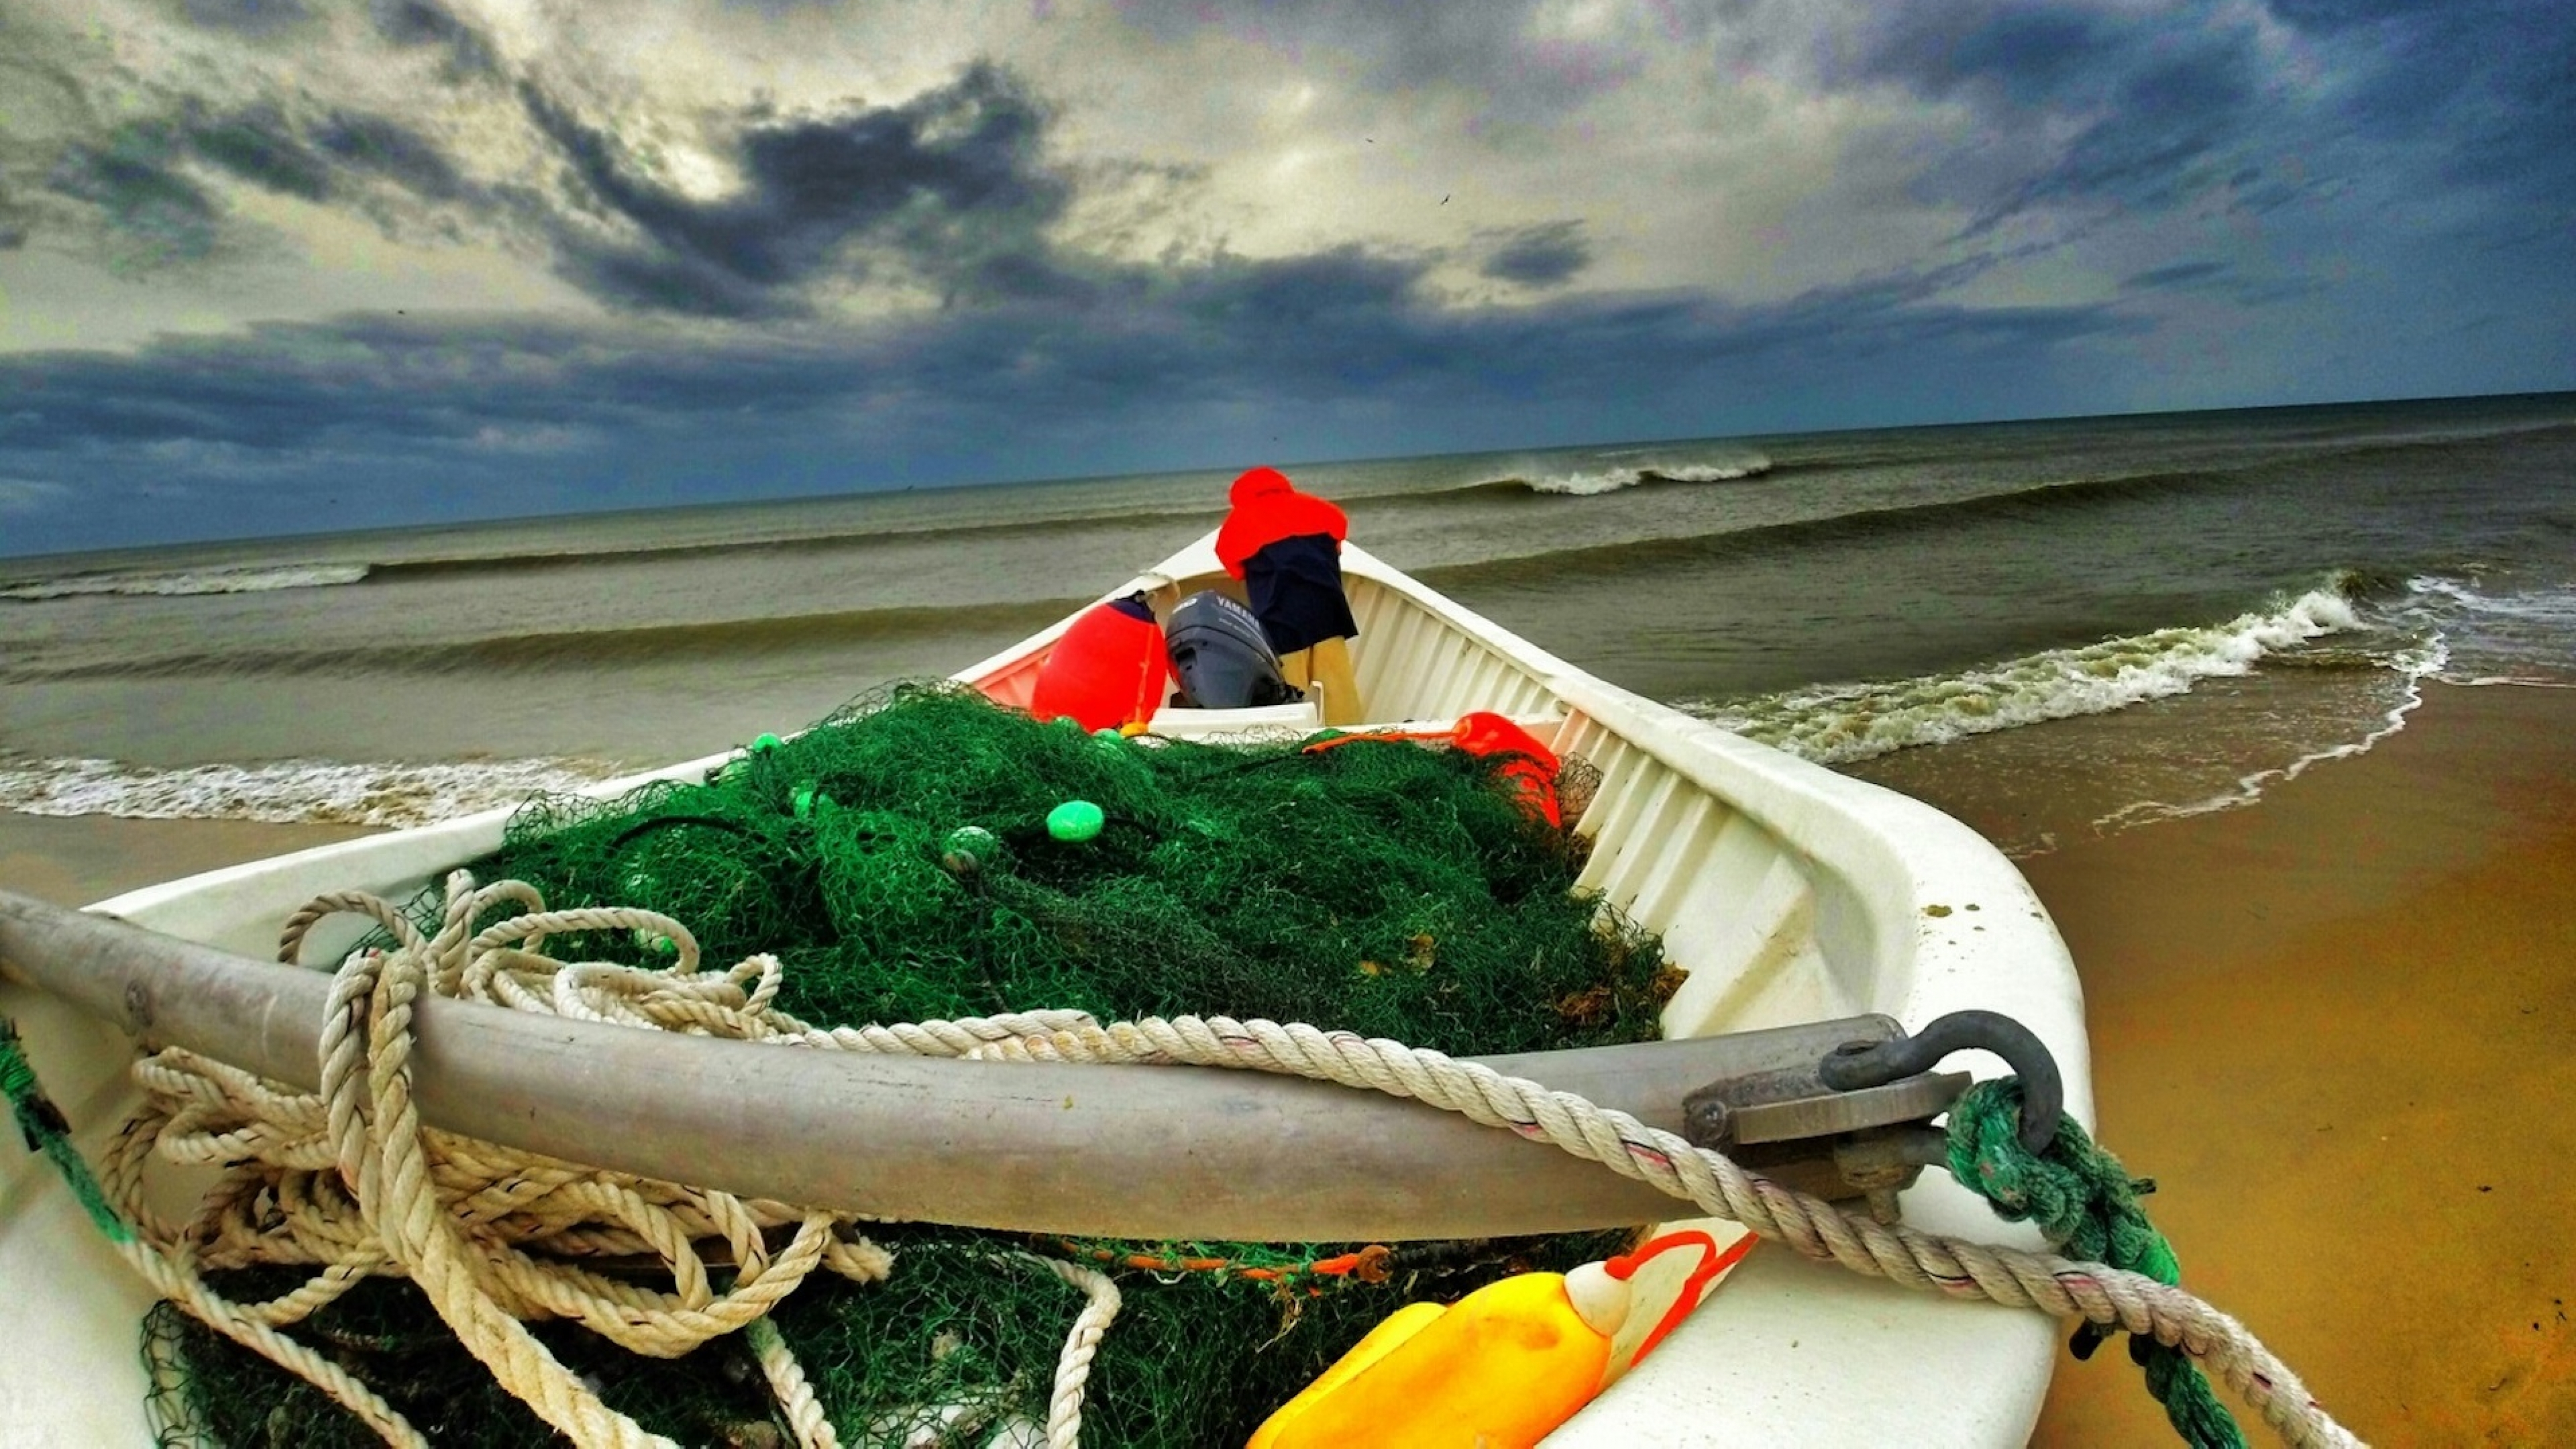 A fishing boat filled with equipment lies on the stormy shore at Cape Hatteras National Seashore.